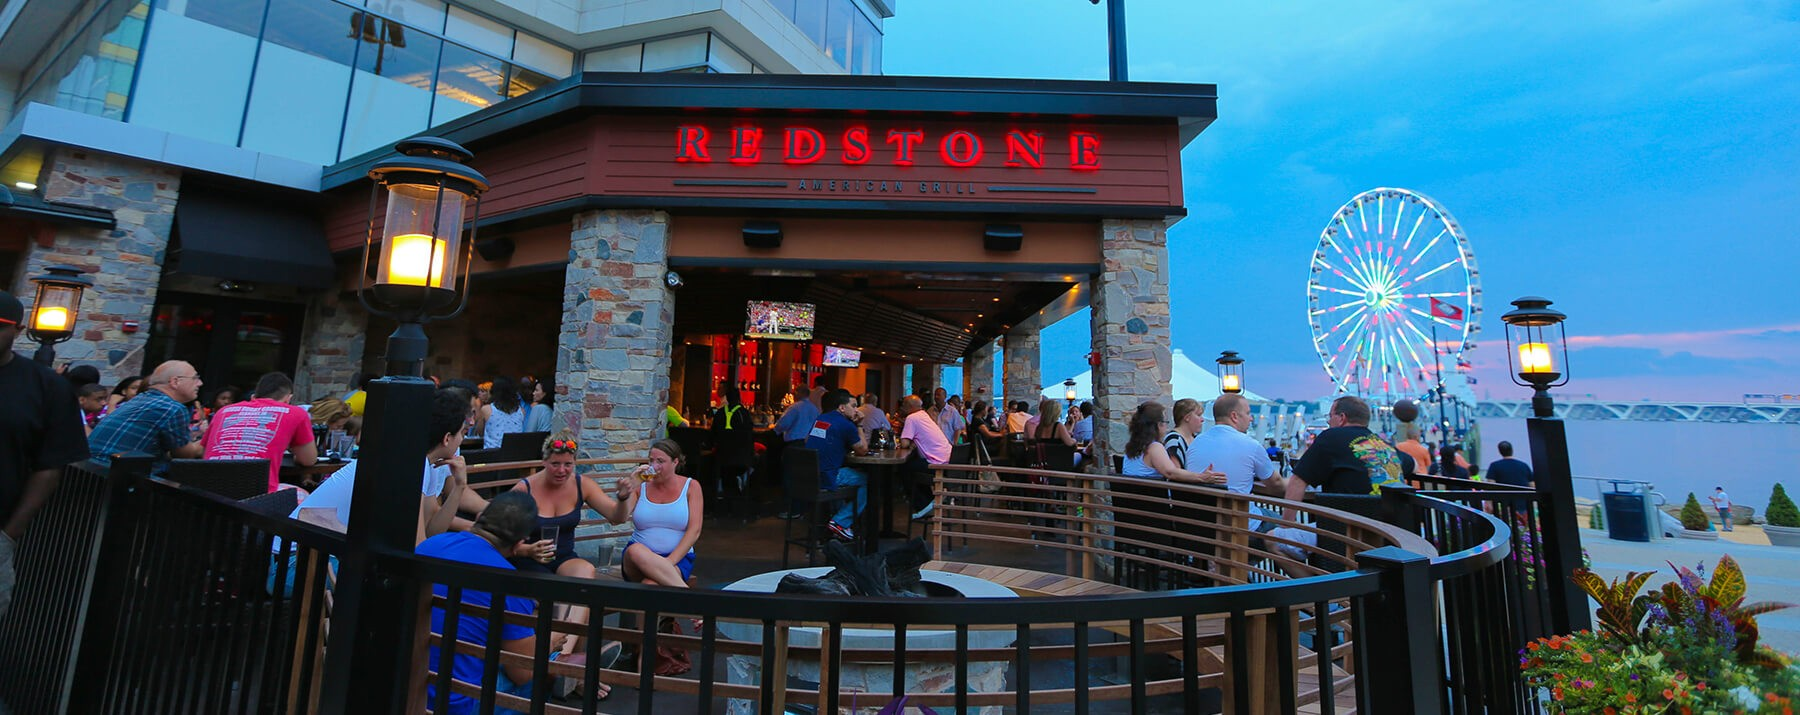 national harbor redstone grill. Cars Review. Best American Auto & Cars Review